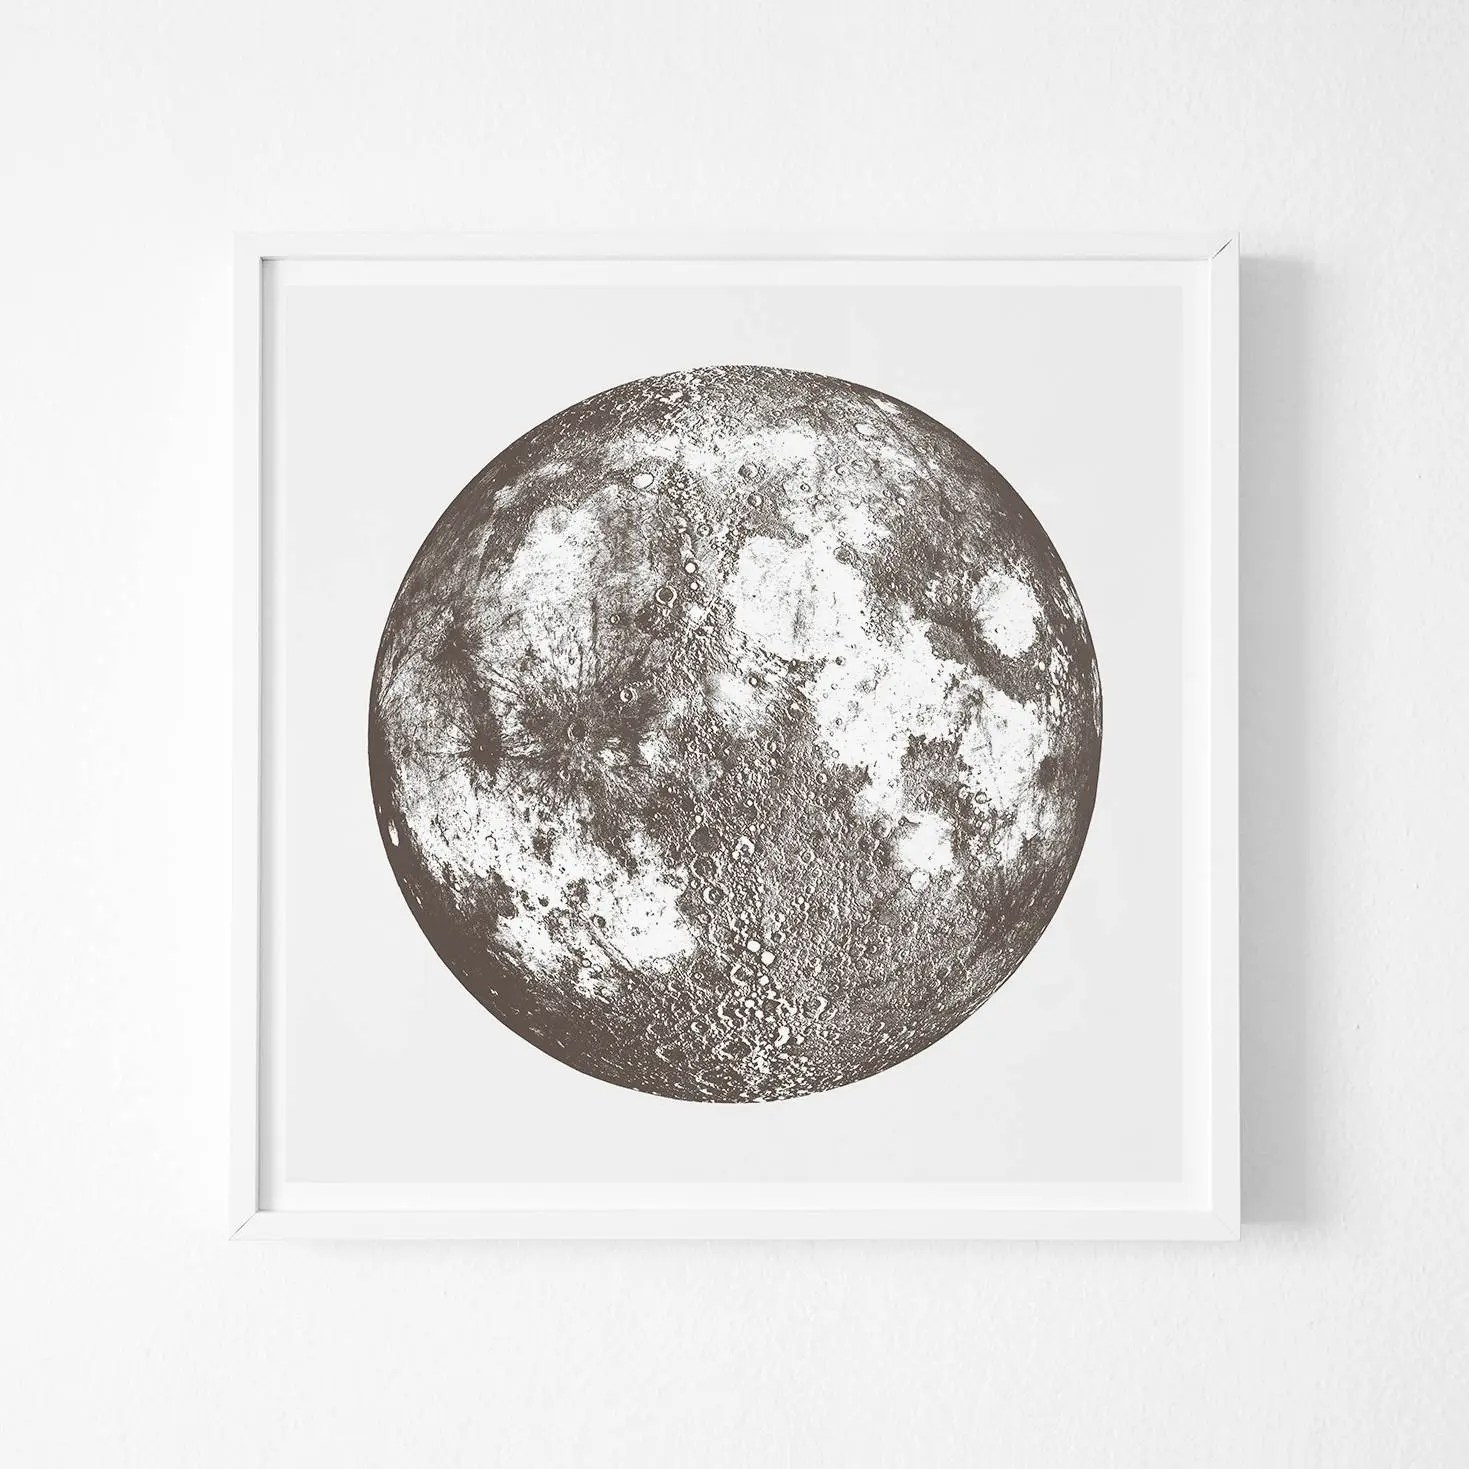 Full Moon Drawing Black And White Full Moon Print Moon Phase Print Full Moon Art Print Inimal Poster Art Large Poster Decor Minimal Art Poster Wall Gallery Decor